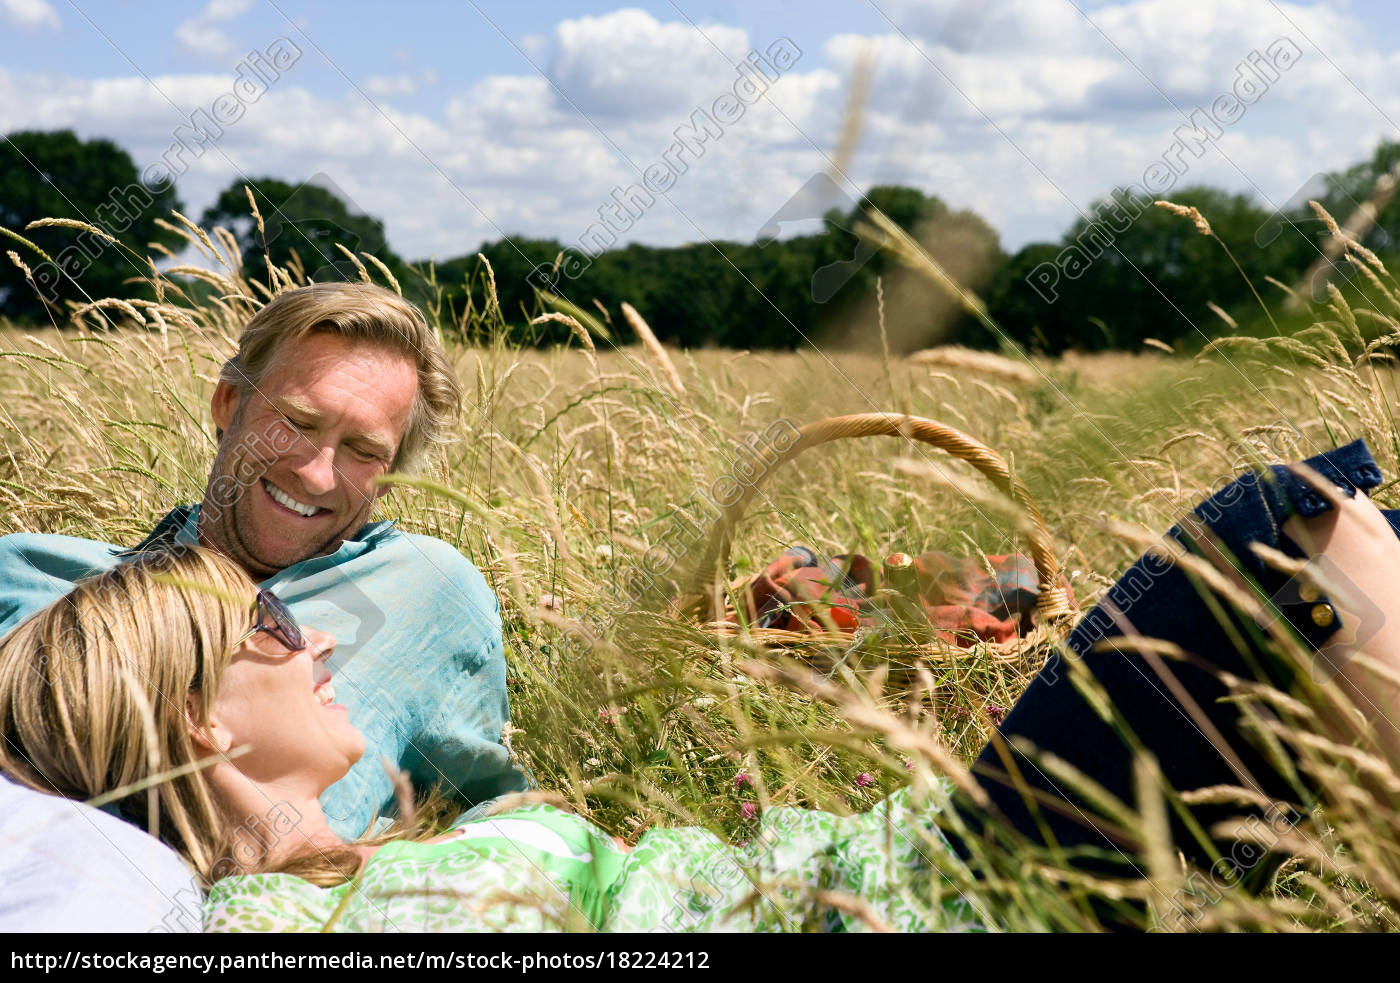 couple, laying, field, , with, picnic, basket - 18224212